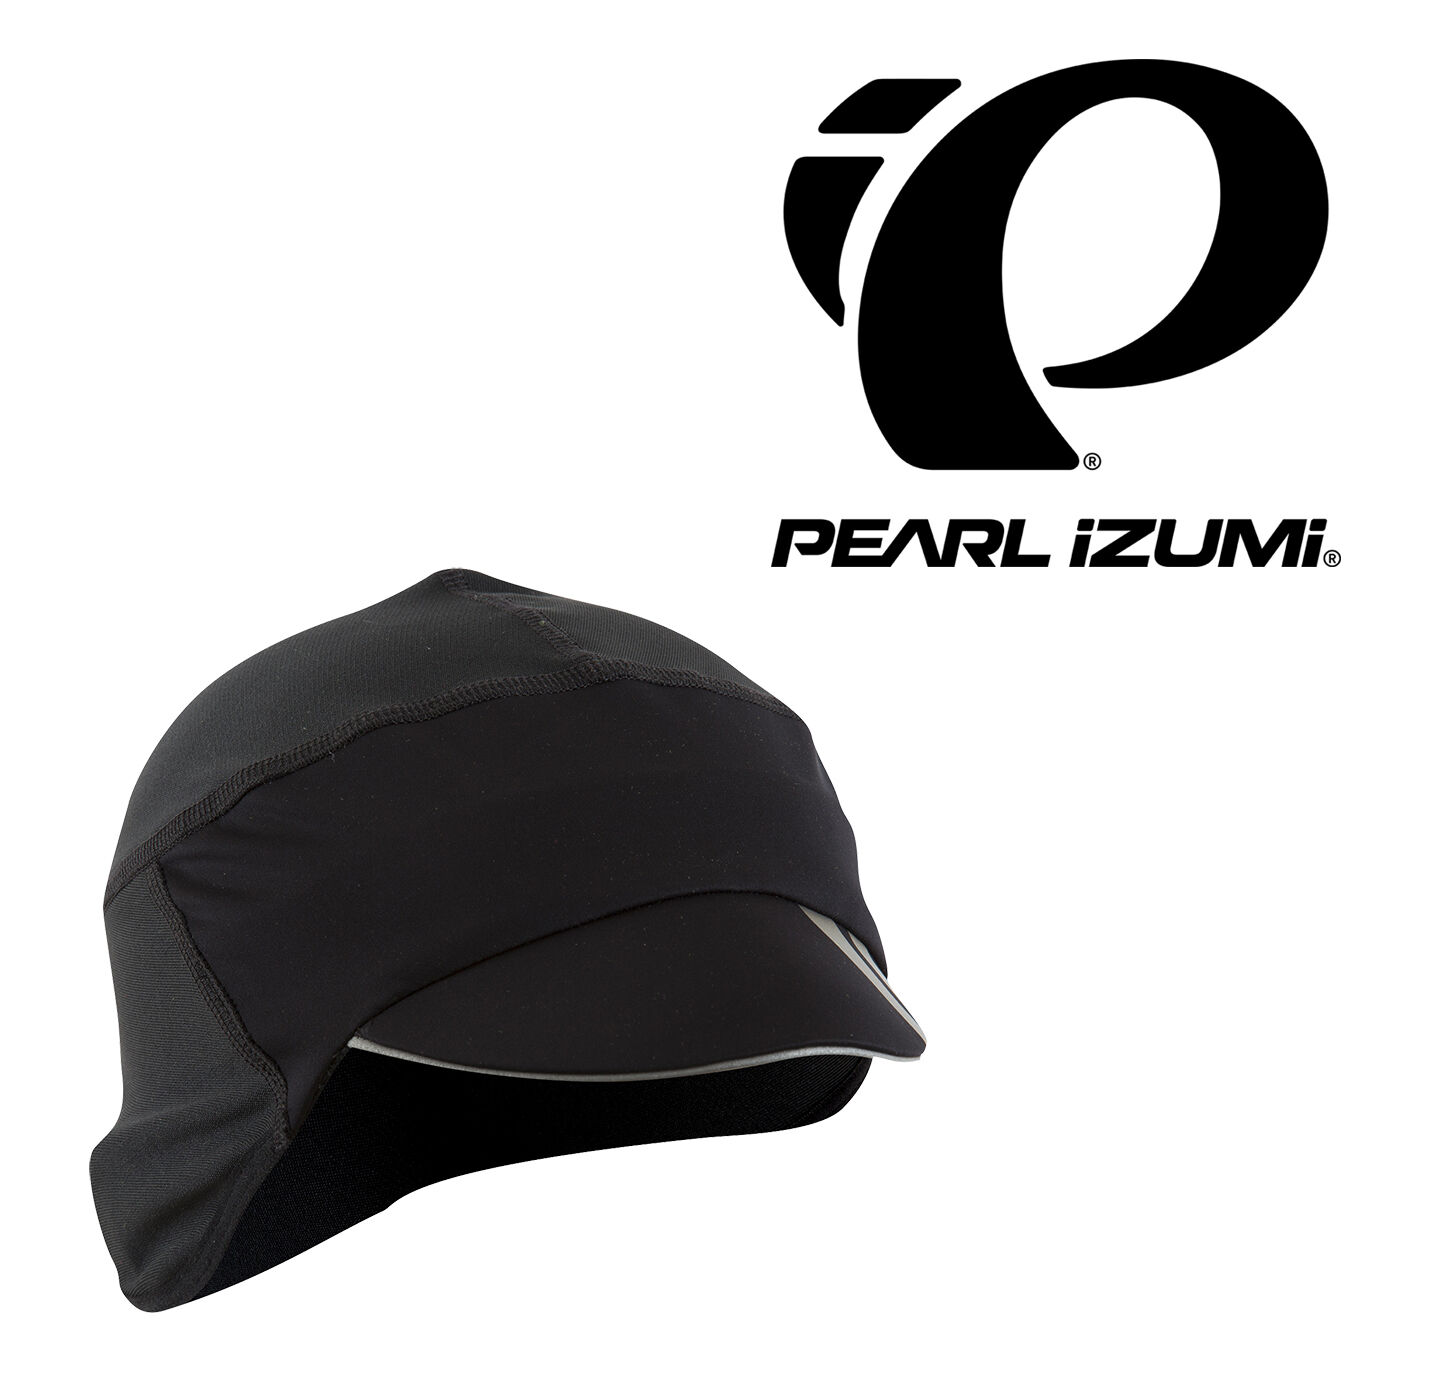 Pearl Izumi Barrier Cycling Cap 14361607 Lightweight Water Resistant Reflect Hat